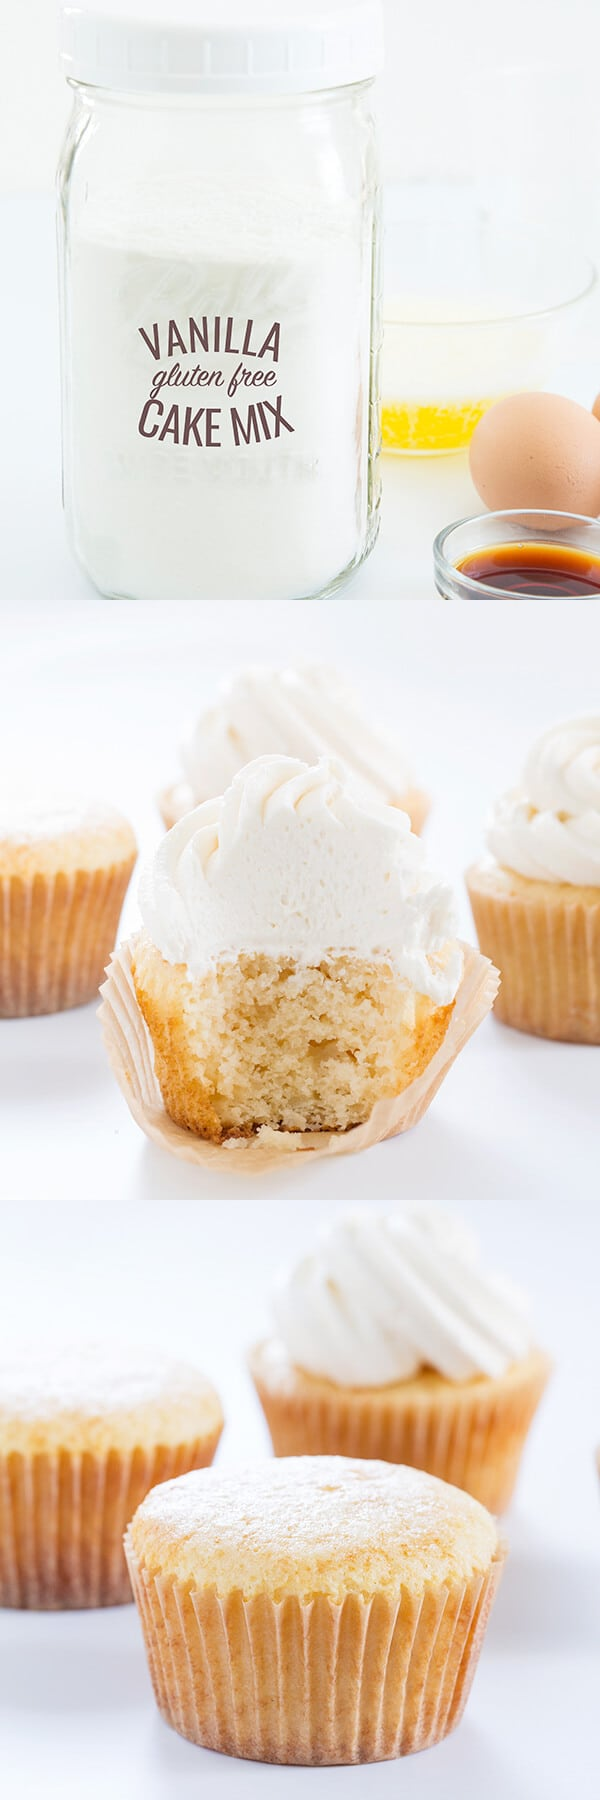 Inside of vanilla frosted cupcake with 3 other vanilla cupcakes in back on white surface